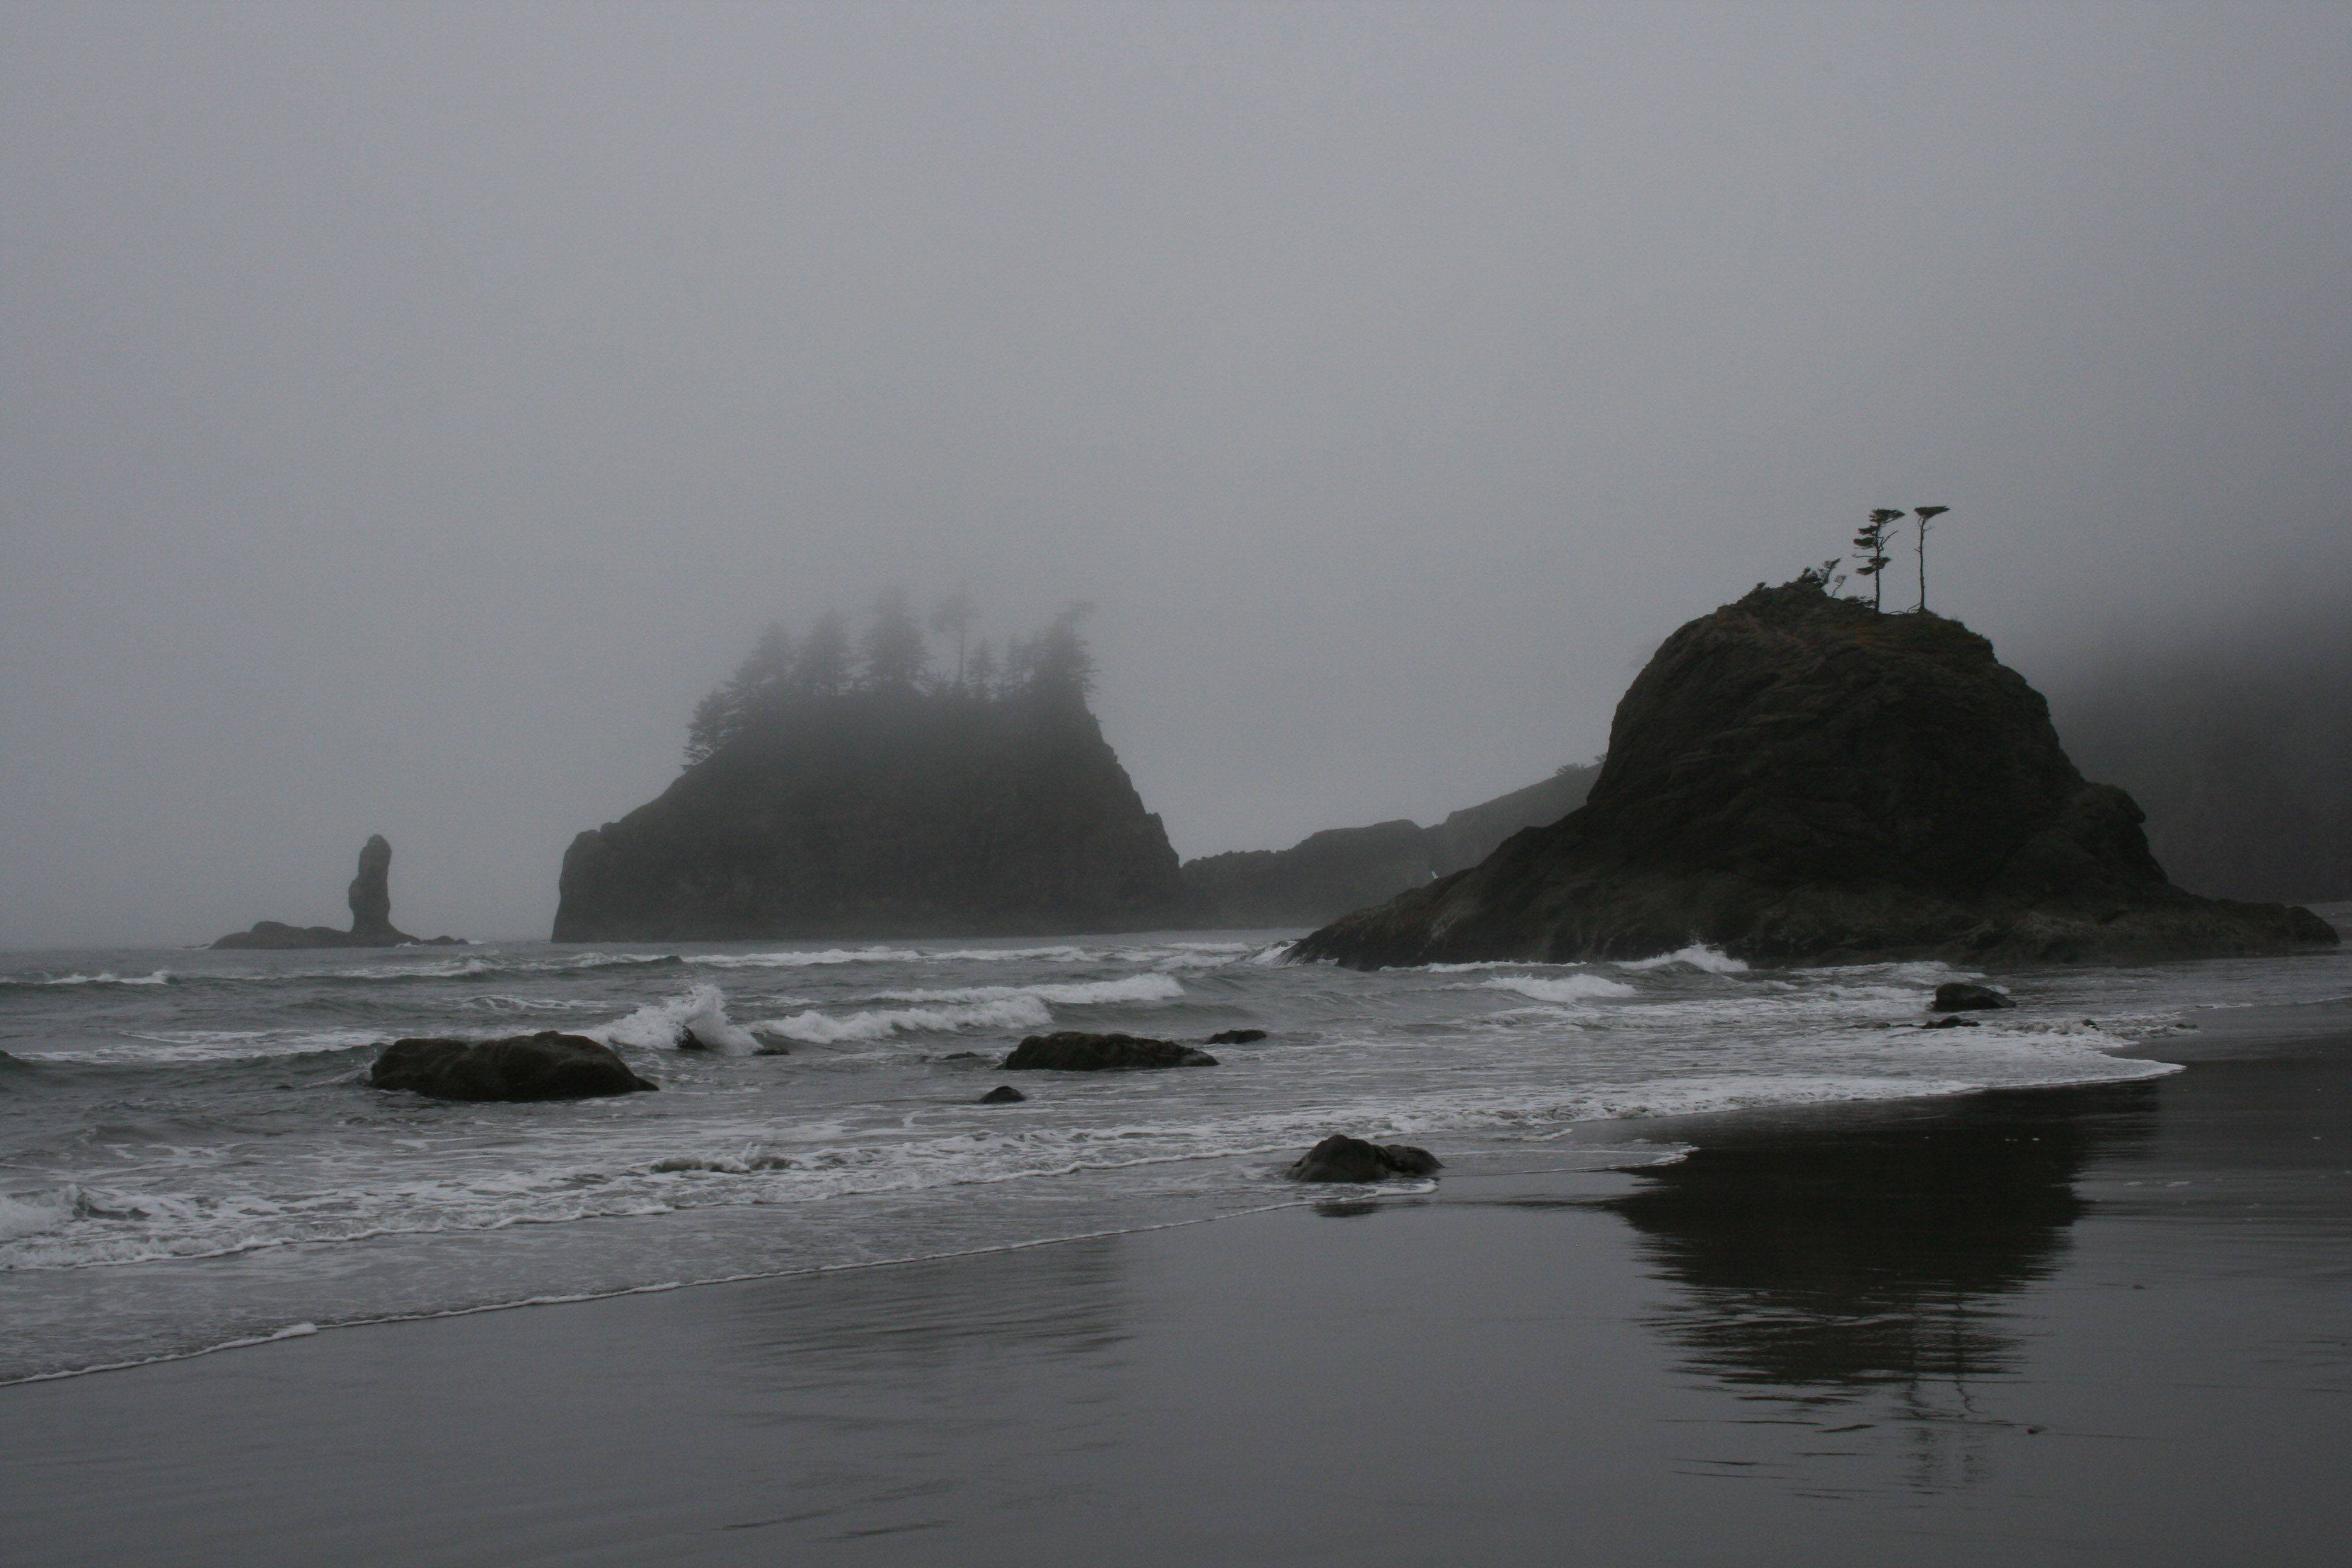 This photo was taking while walking on the beach in LaPush Washington last July. The fog hugged the shore all day for the whole time we were there. The tall cliffs were truly spectacular!